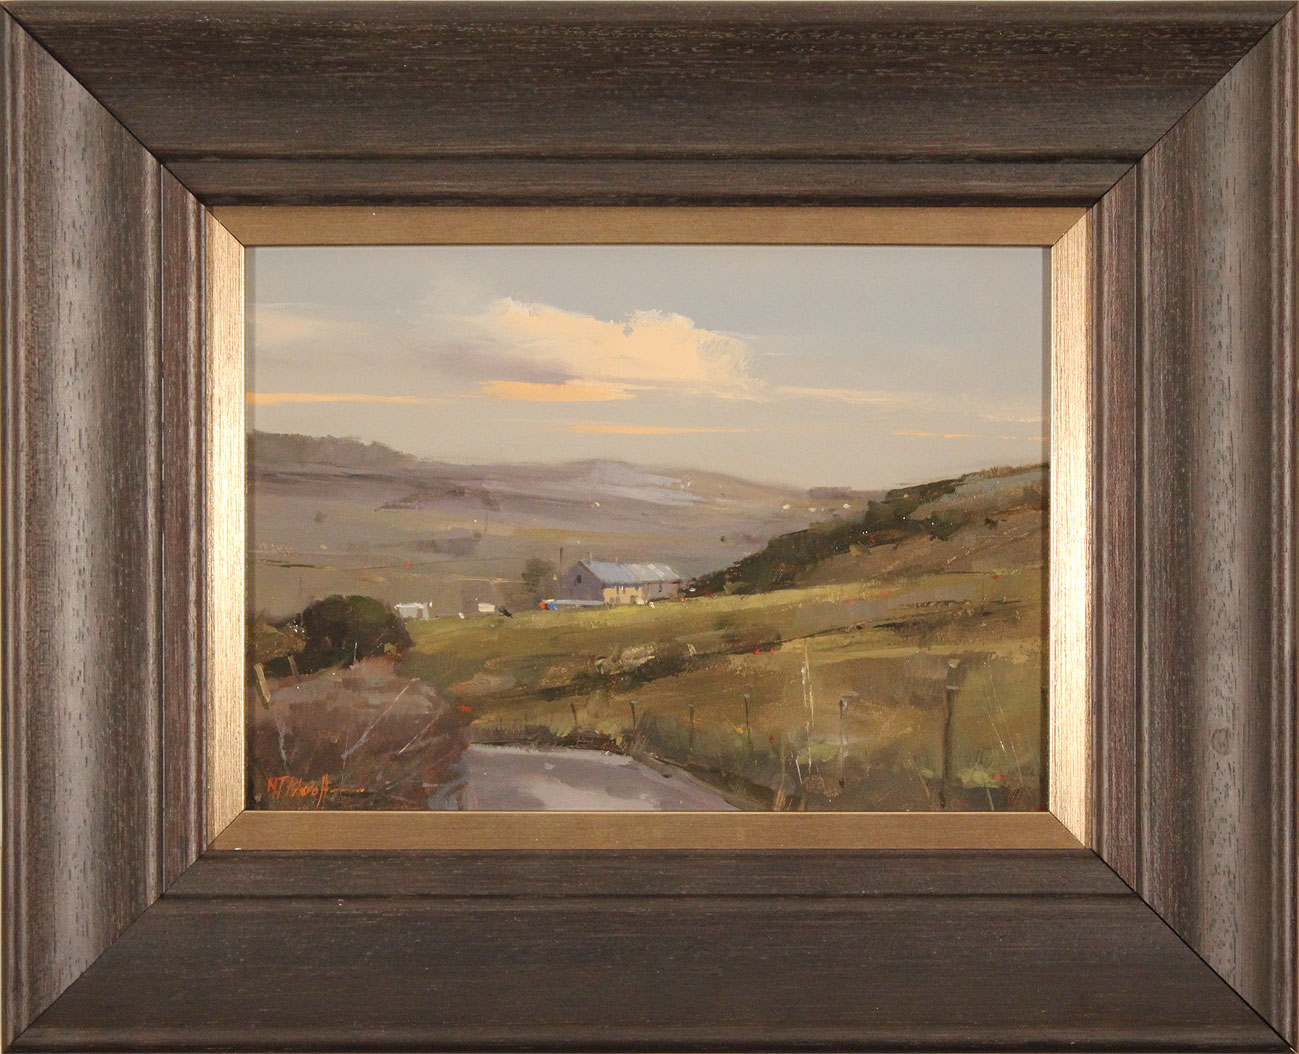 Michael John Ashcroft, AROI, Original oil painting on panel, Road to Harrogate Click to enlarge